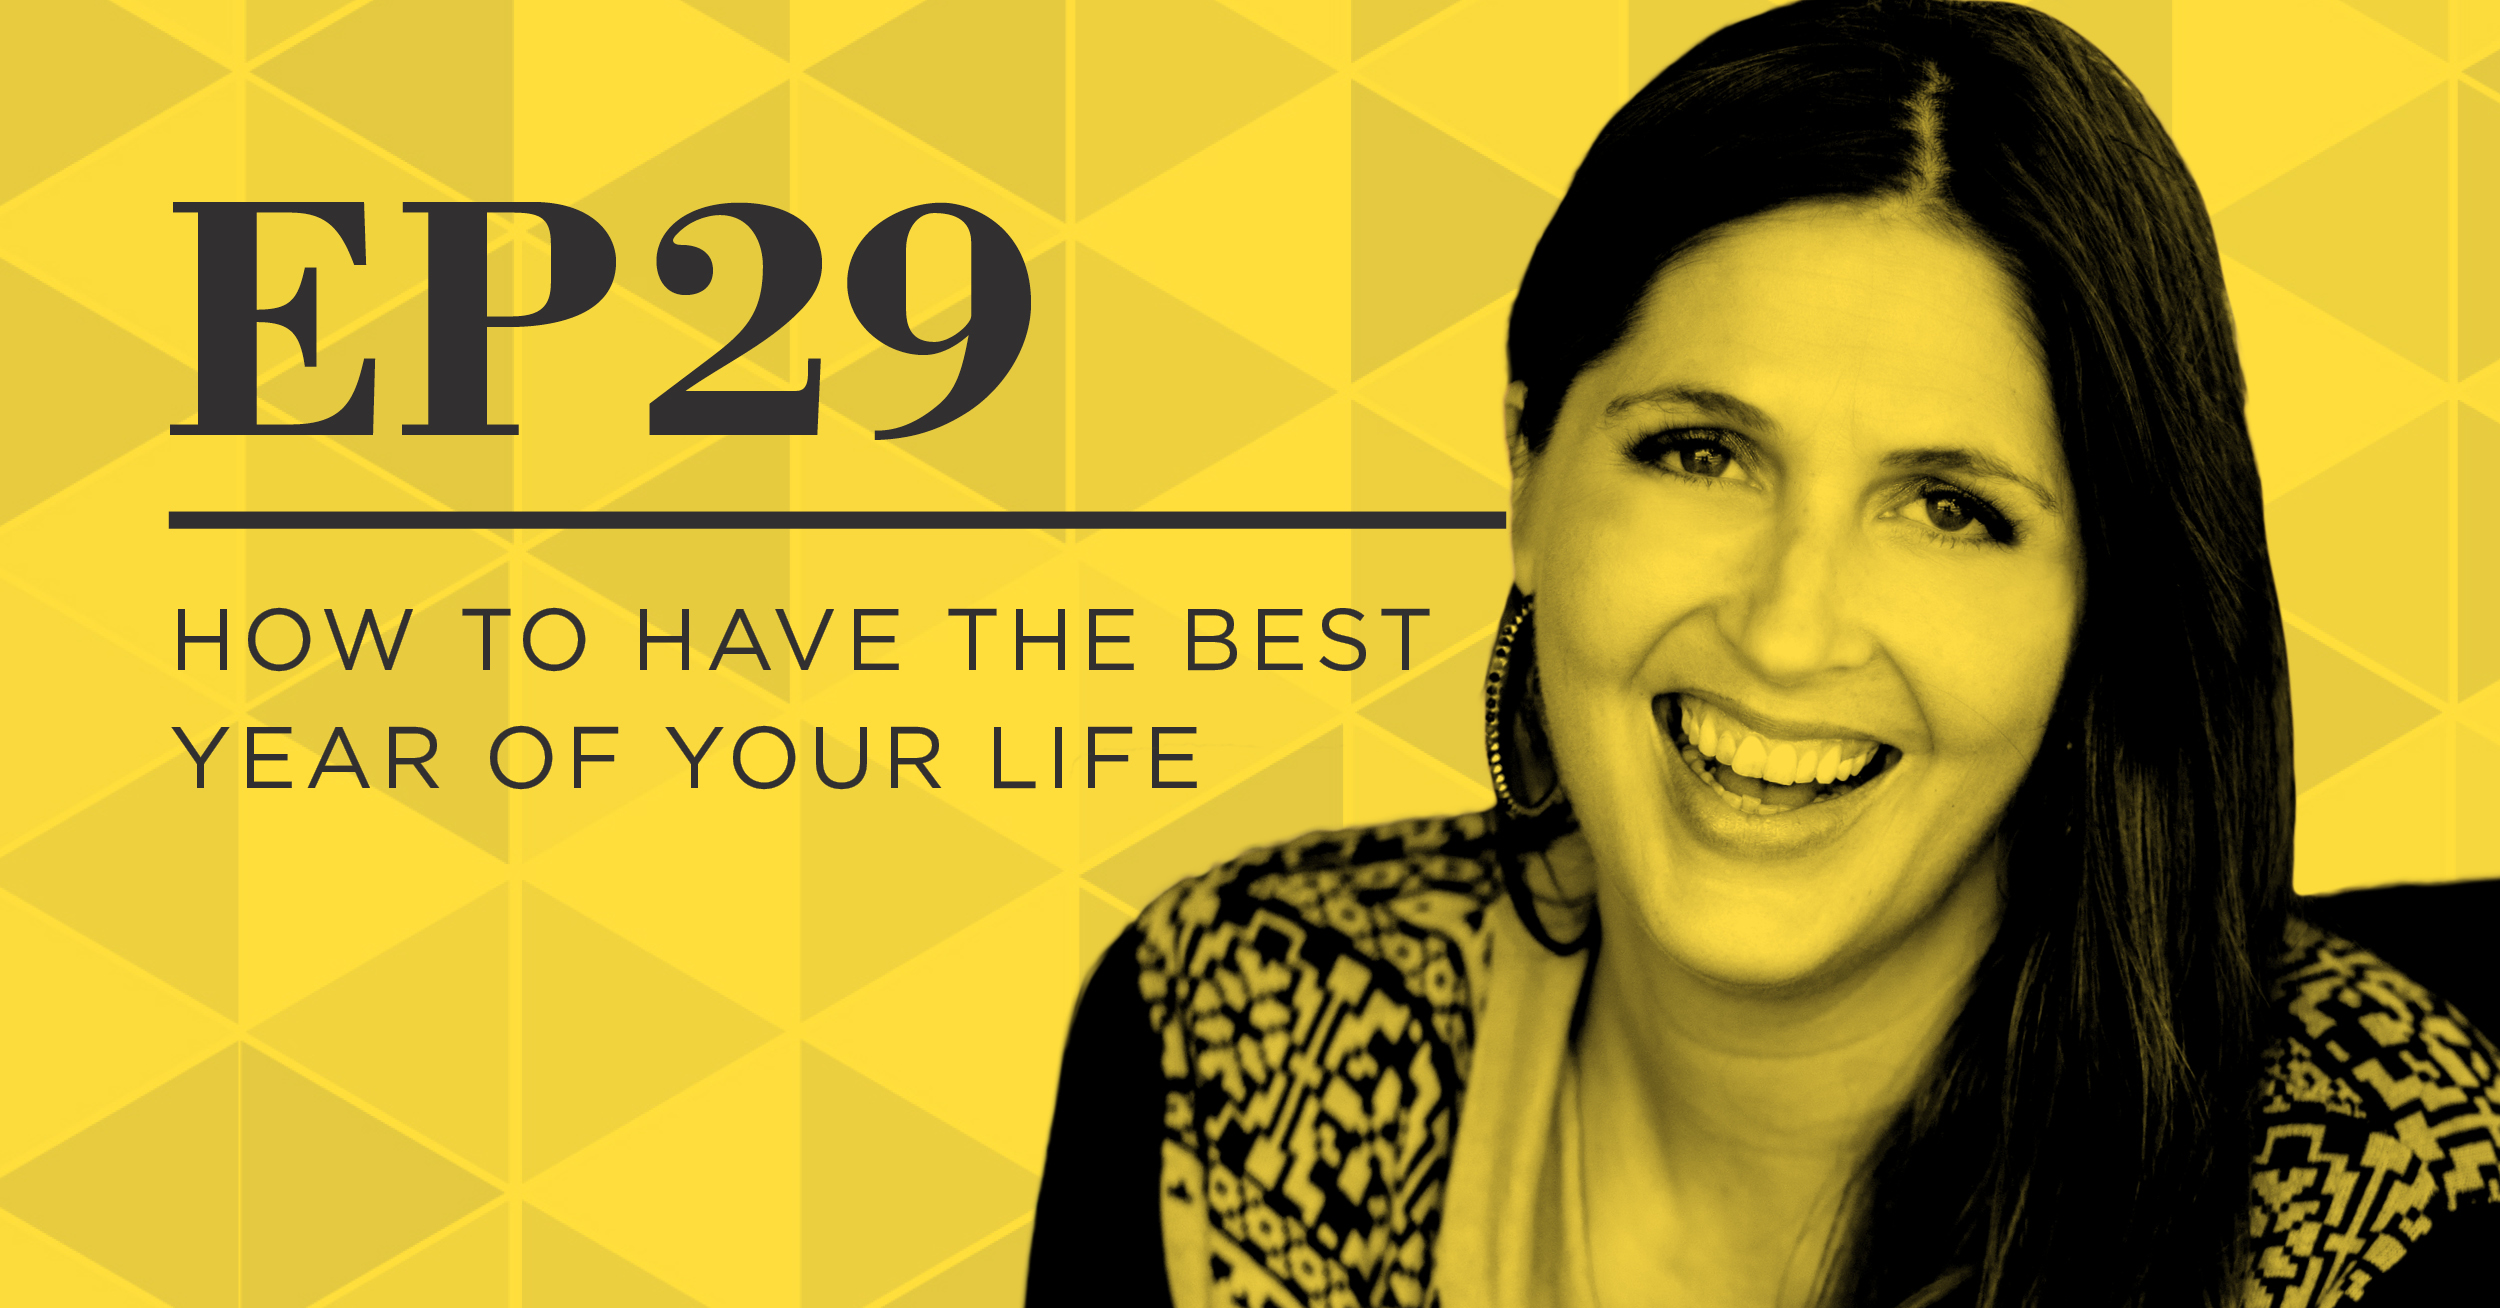 How To Have The Best Year Of Your Life